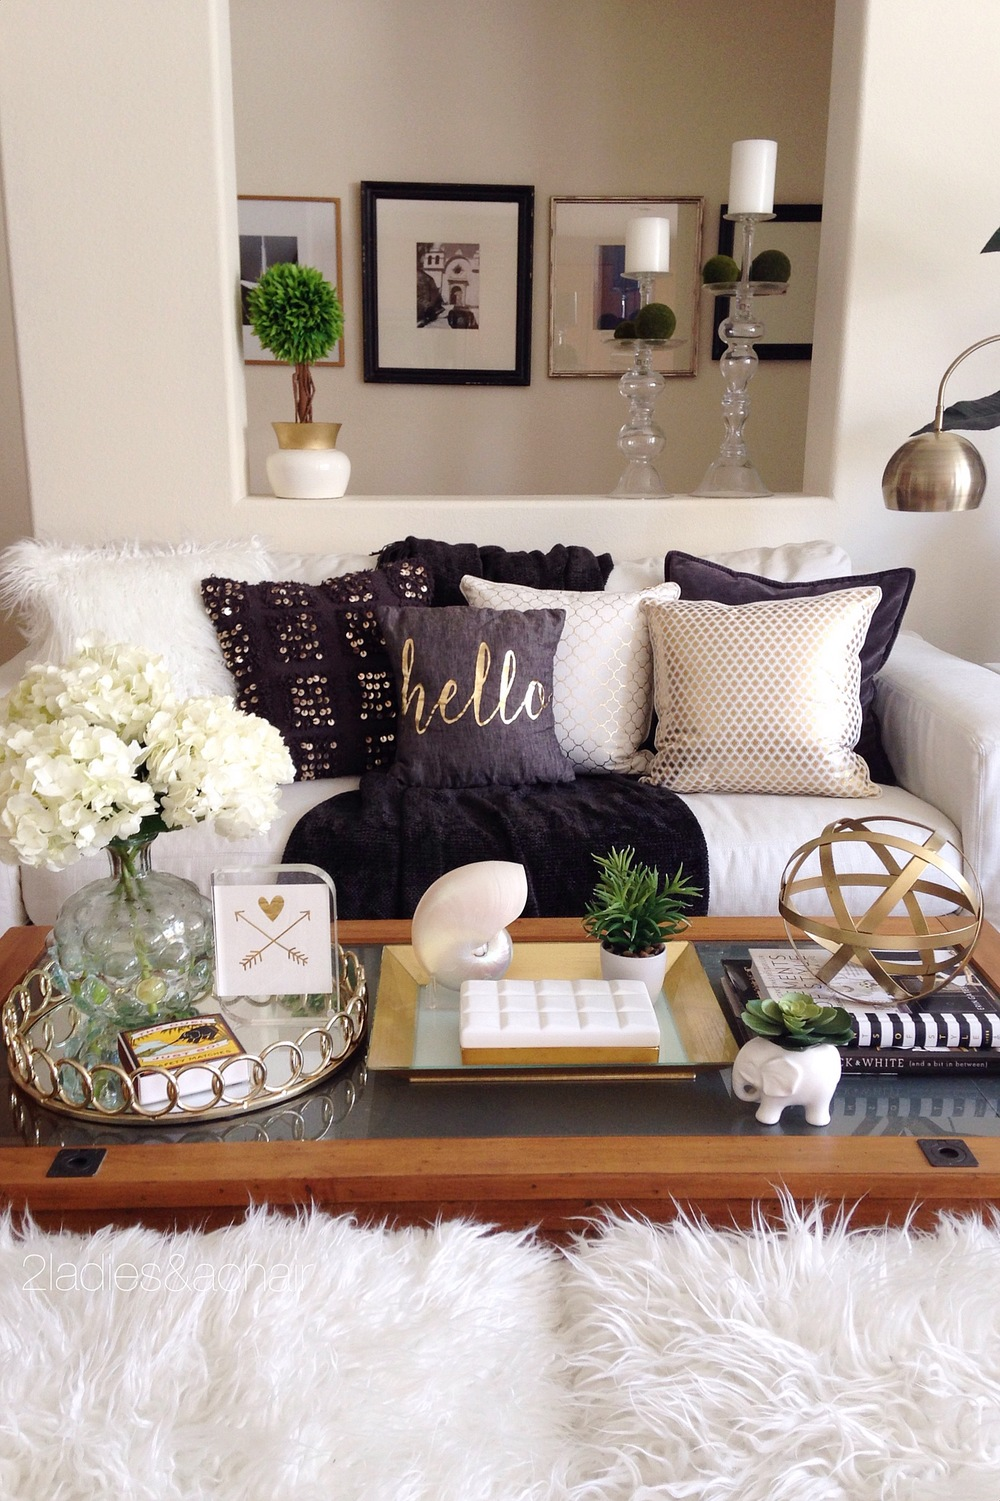 Here I've chosen gold as my accent color. This style of decorating can be easy on your budget too since your color accents can be added and changed with pillows and throws.